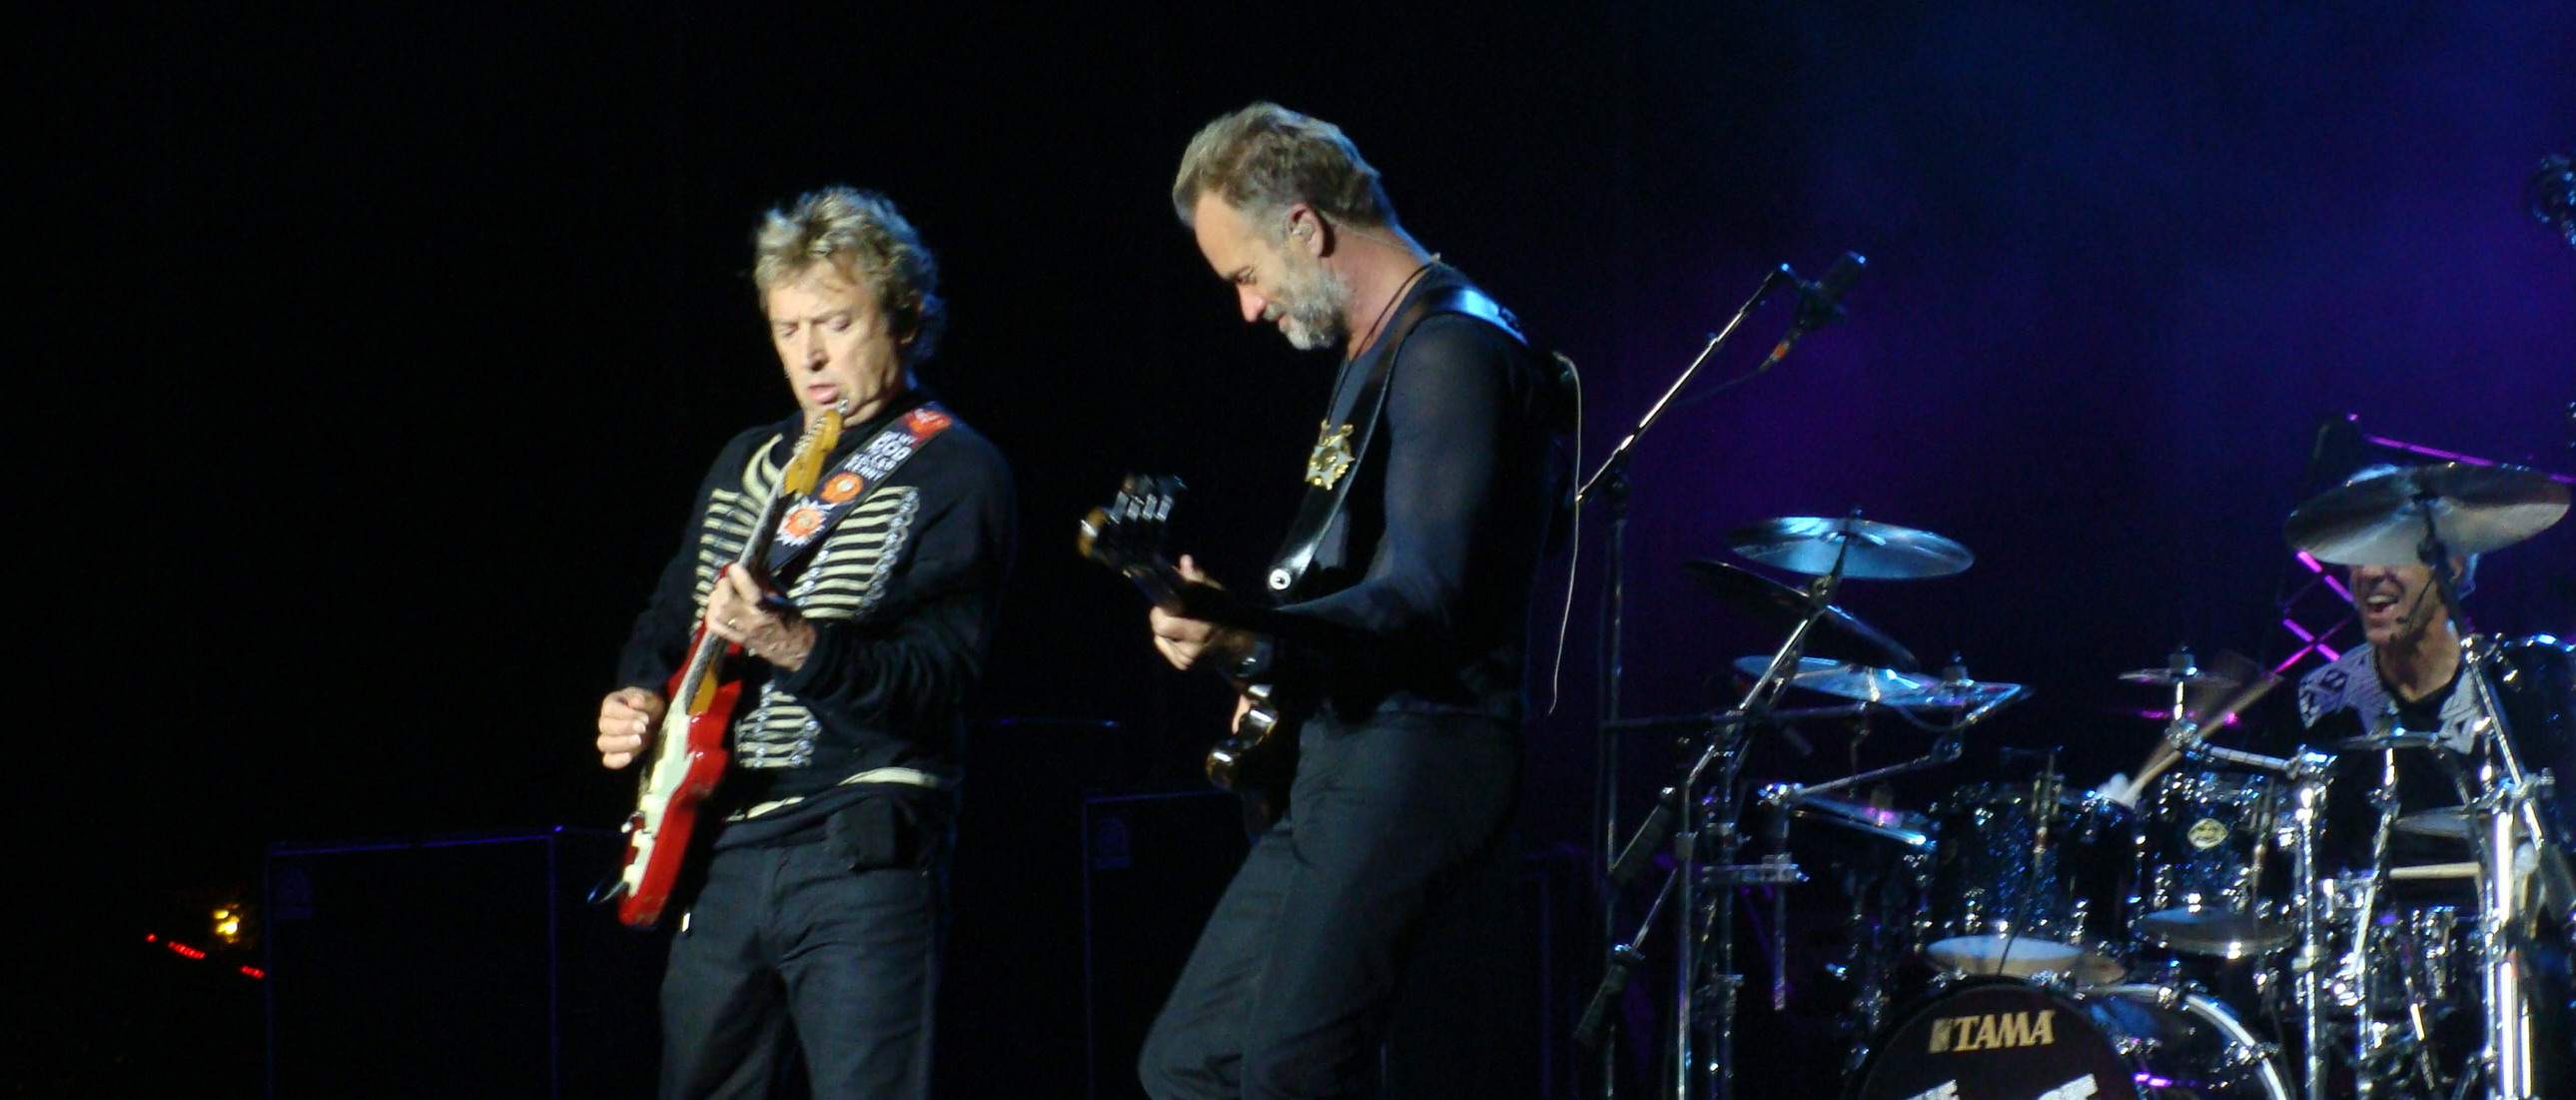 The Police at BBK Live 2008